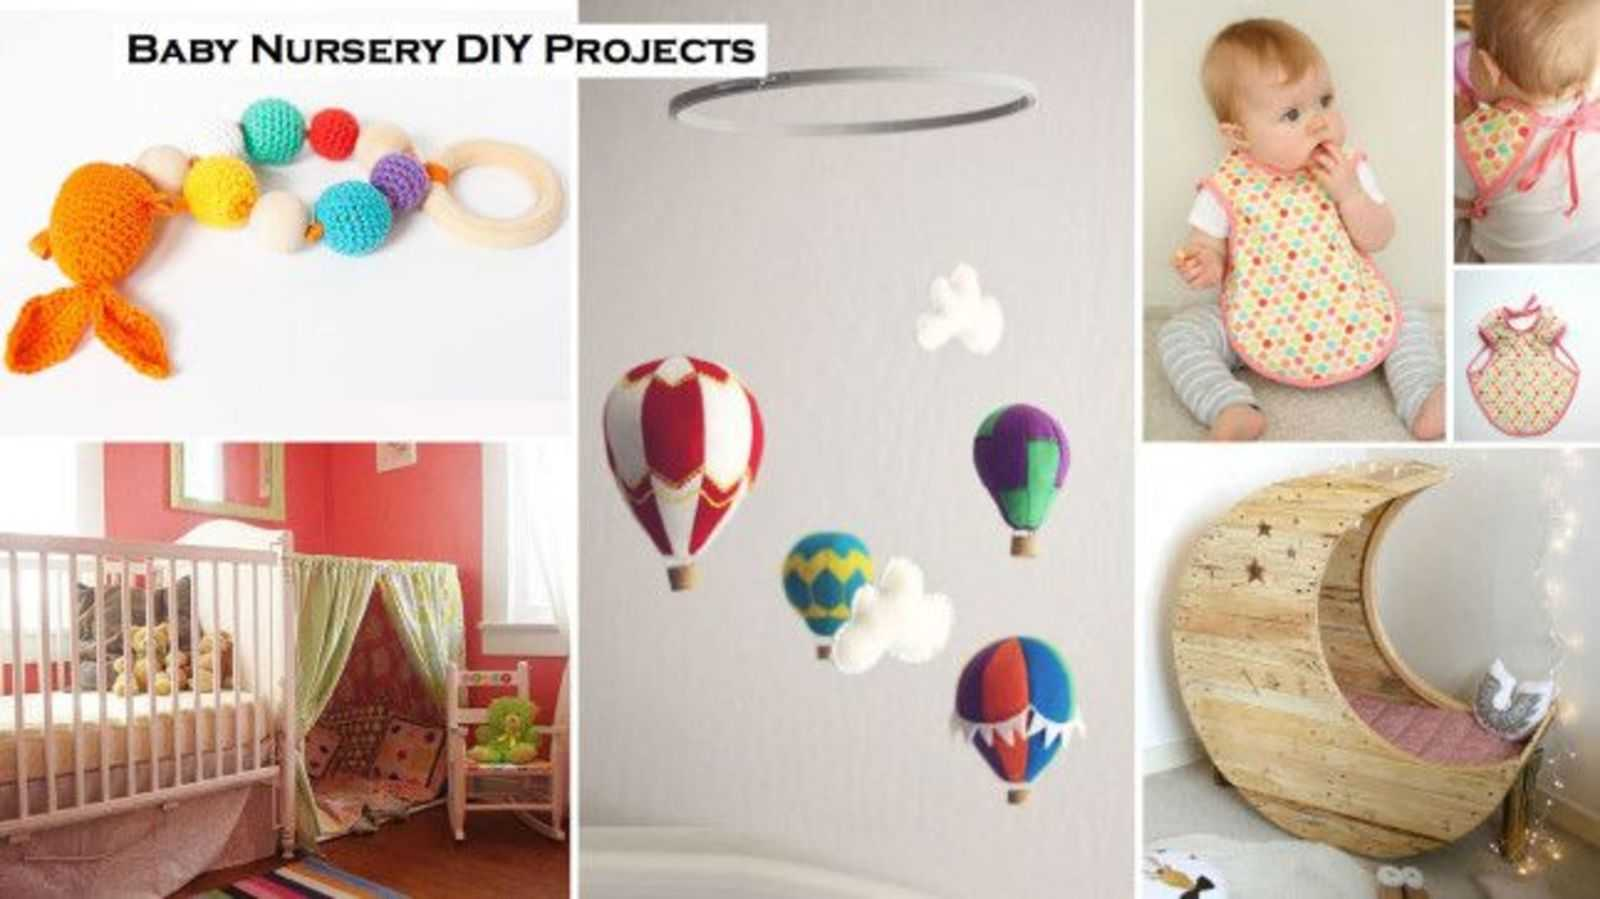 Transform your babys nursery and wardrobe with these amazing diy projects